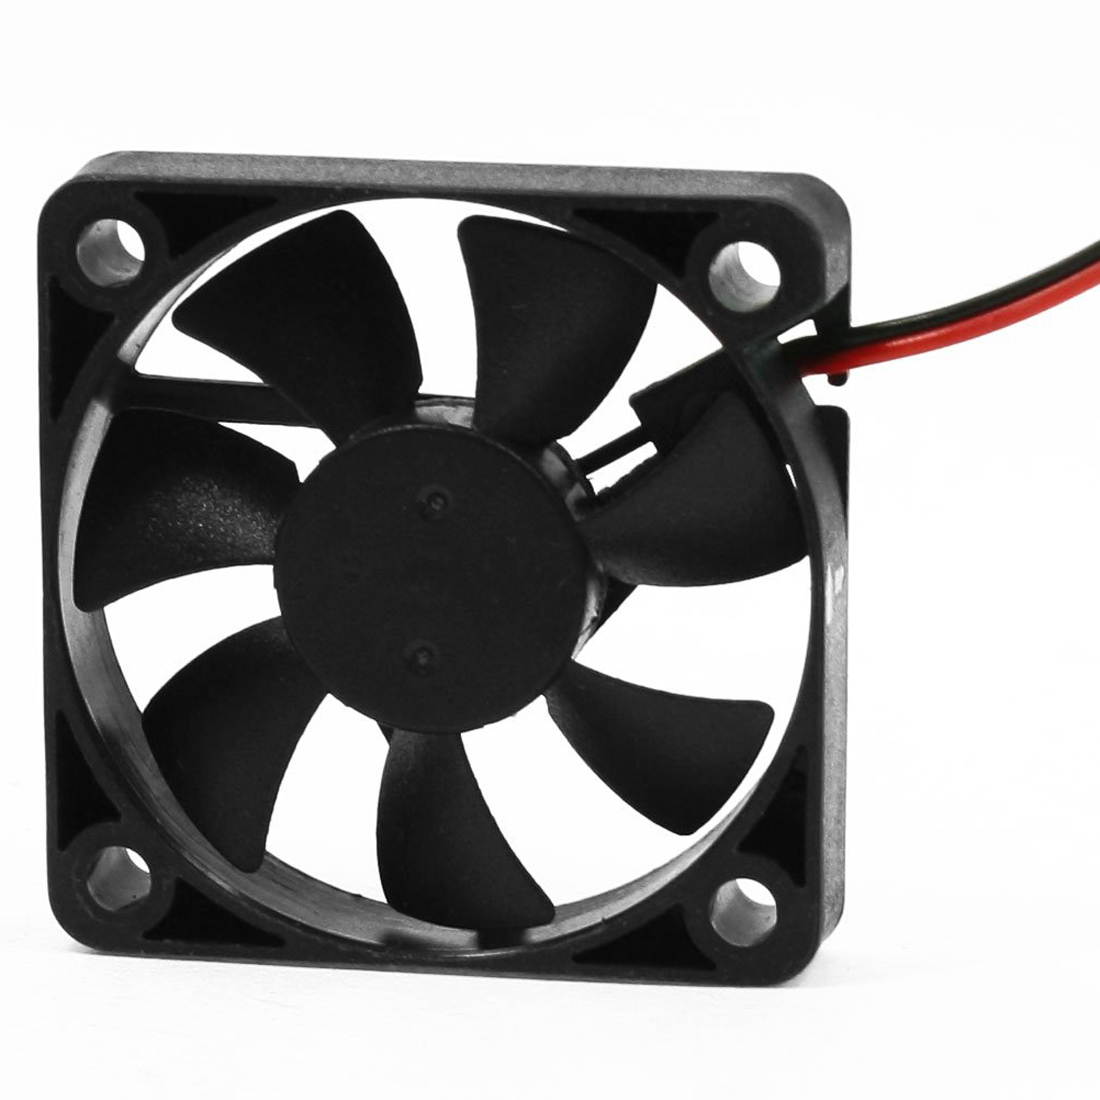 50mm x 50mm x 10mm 5010 DC 12V 0.1A 2Pin Brushless Cooling Fan цены